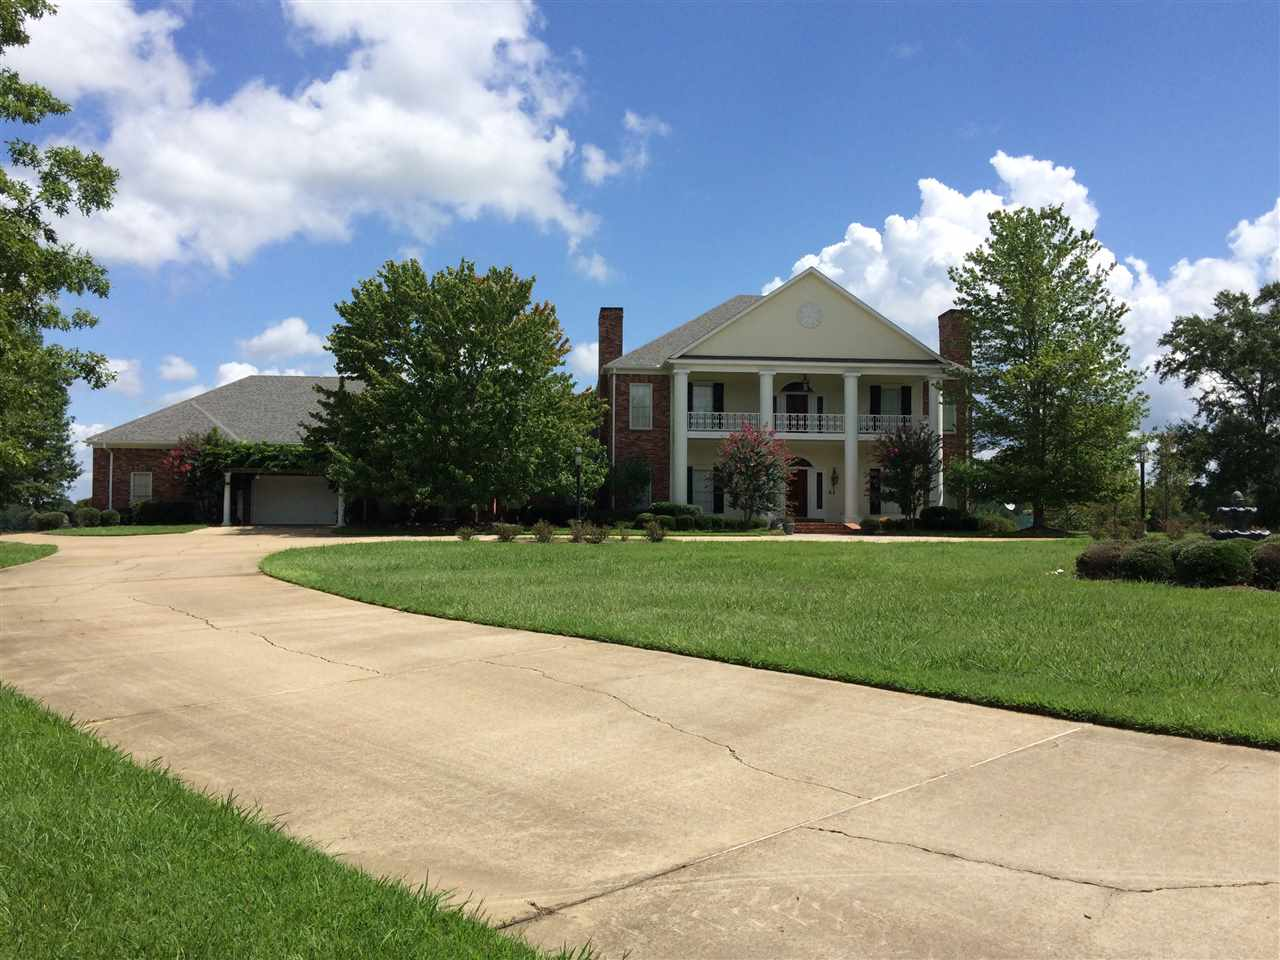 242 HIGHLAND HILLS LN   Flora MS 39071 - Mississippi property for sale